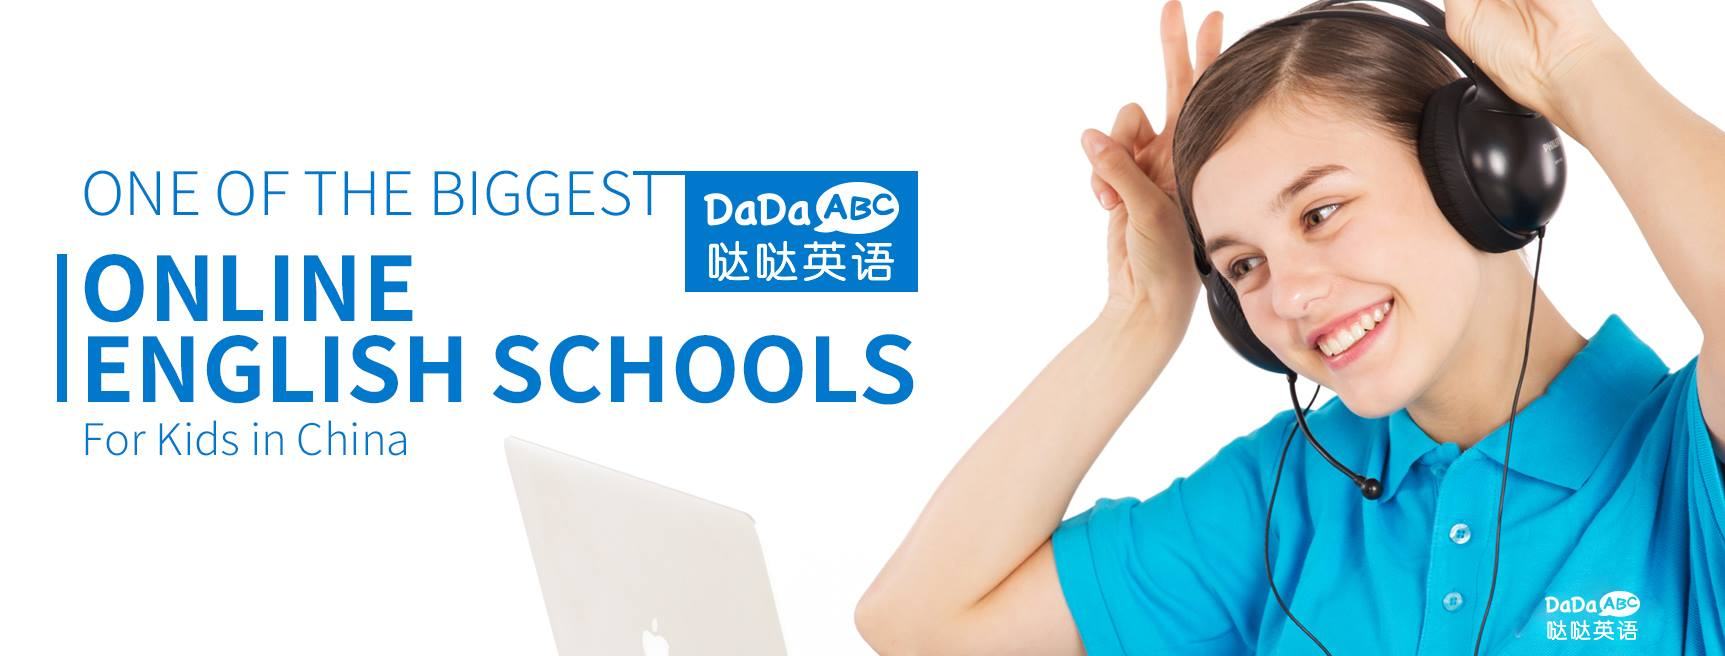 One of the biggest online English Schools | DaDaABC